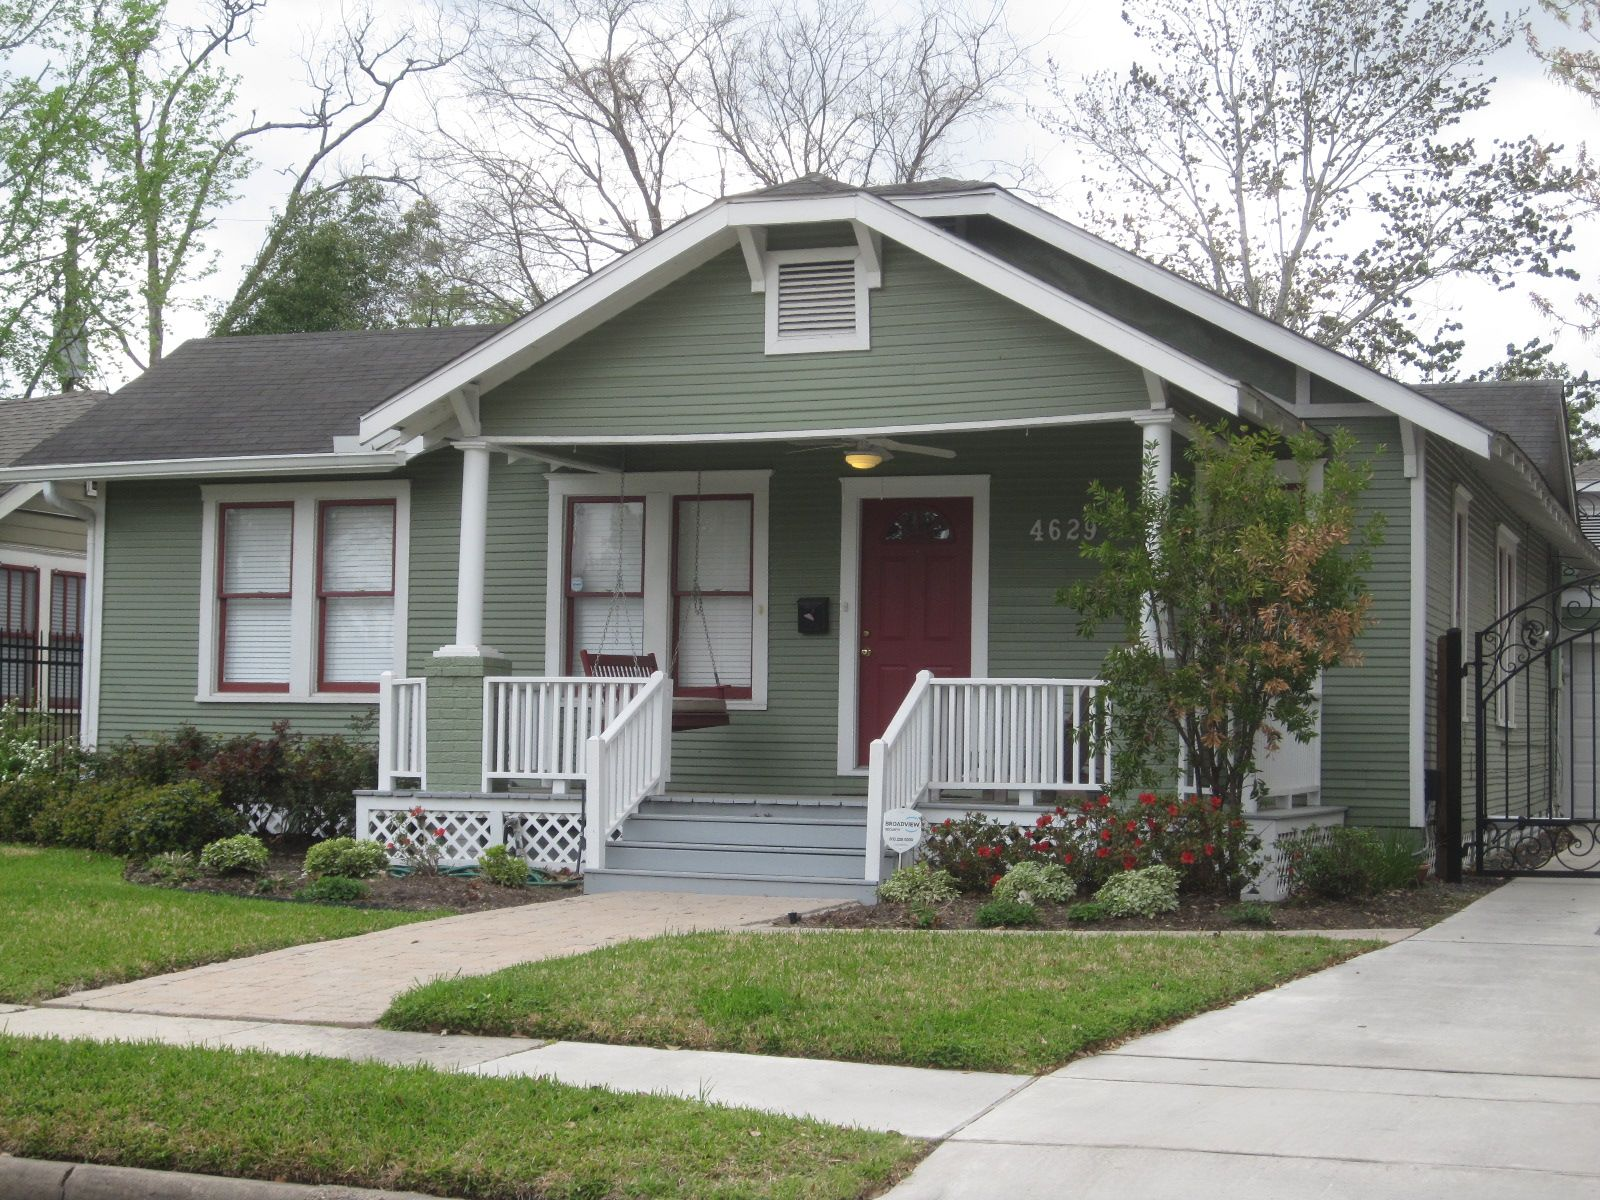 Beach Bungalow Exterior Paint Colors Another Subdued Tone But With A Burgandy Secondary Color